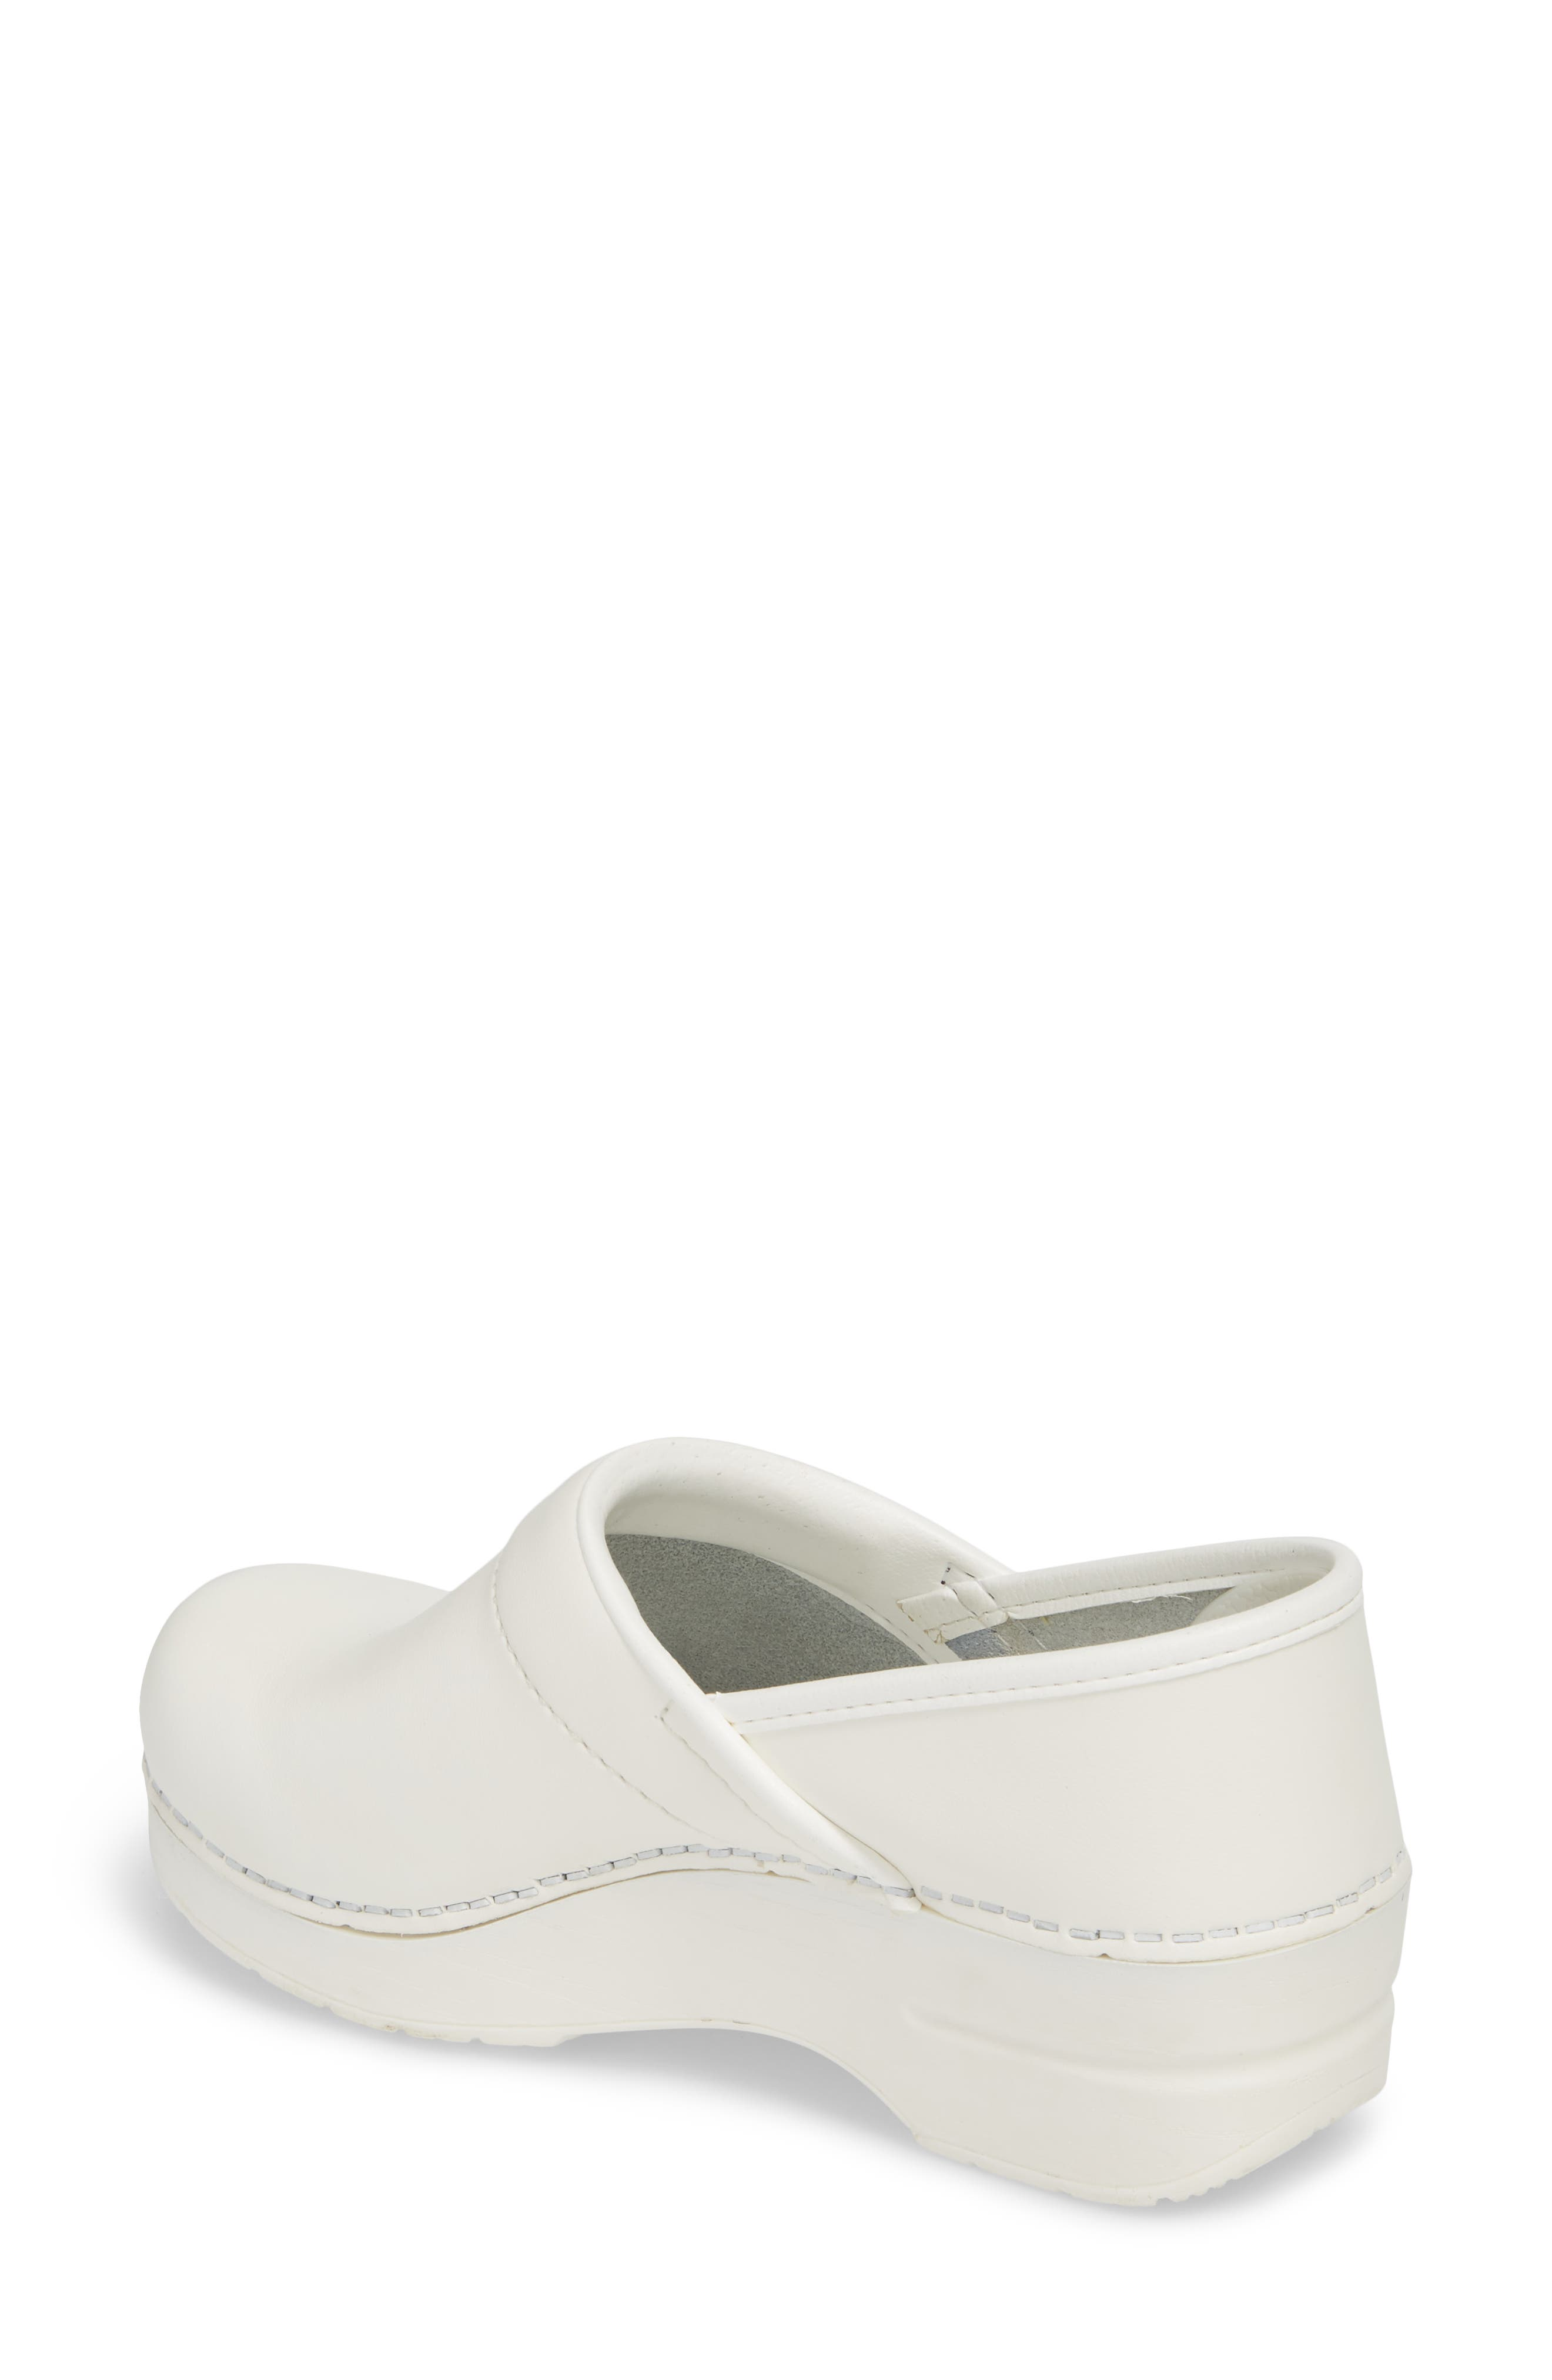 Wide Pro Clog,                             Alternate thumbnail 2, color,                             White Leather